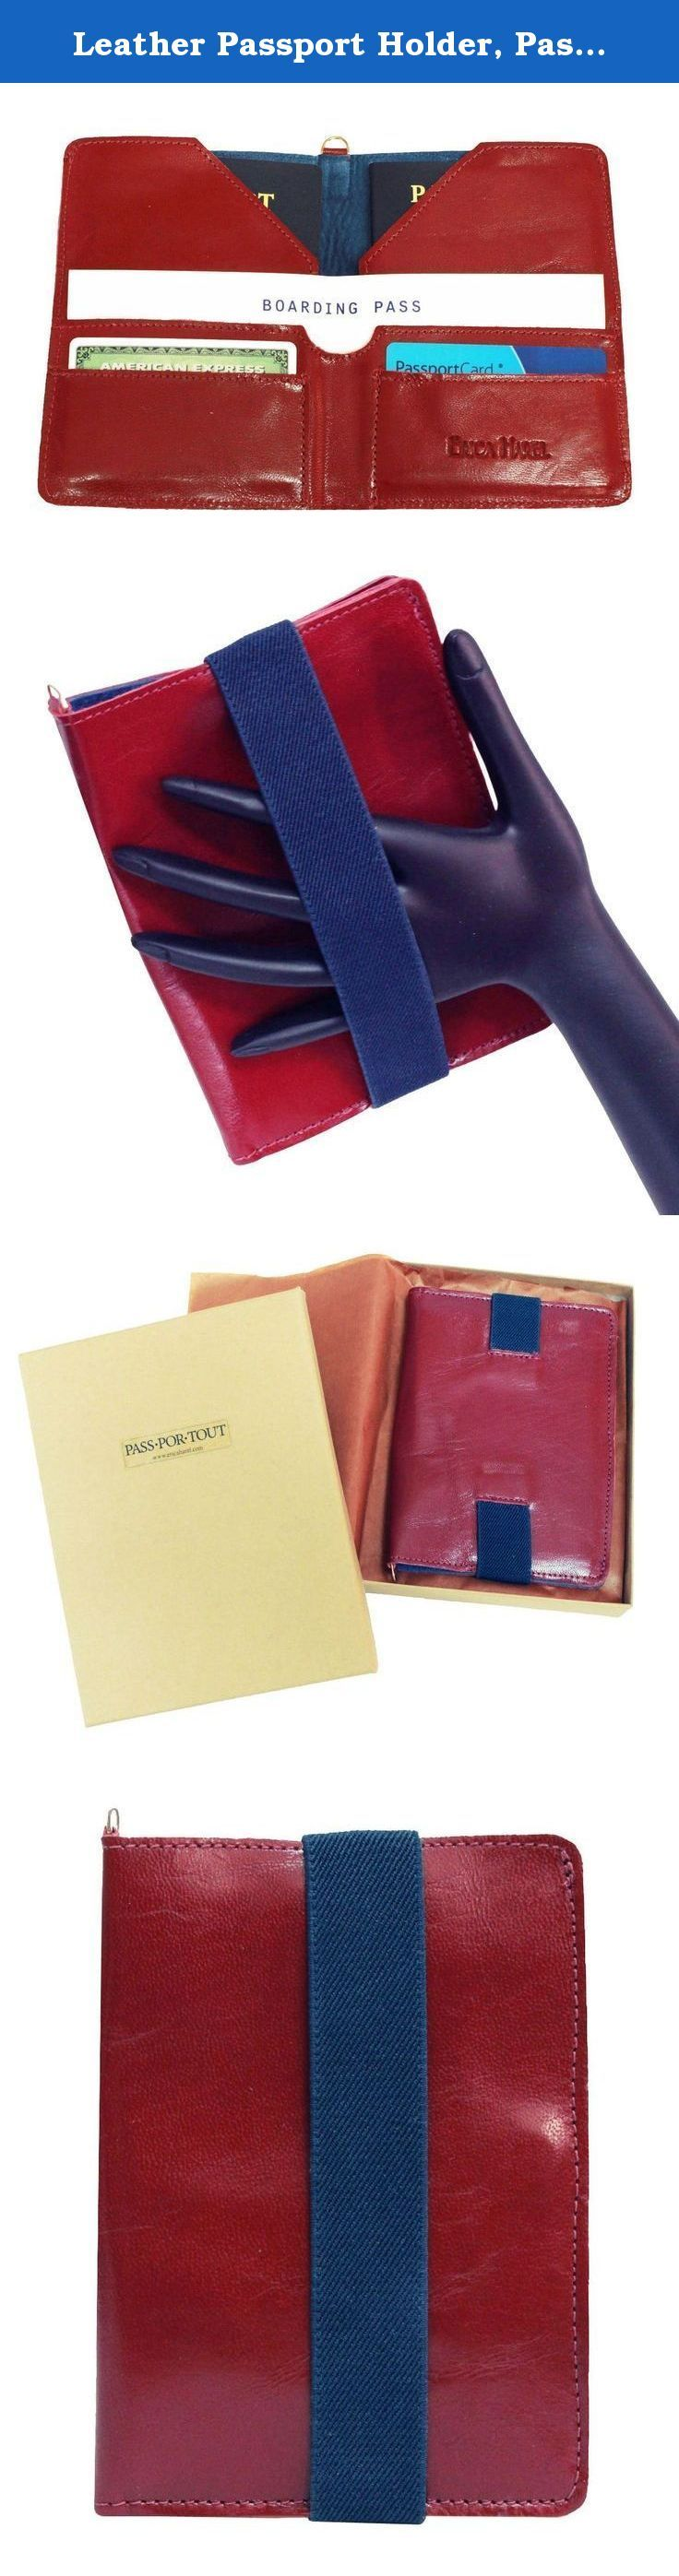 Leather Passport Holder, Passport Wallet, Passport Cover, Passport Case. Holds 2 Passports, Boarding Pass, and Cards • Premium Italian burgundy leather with dark blue leather interior • Attach to your carry-on or handbag, or wear it like a clutch. • Fits at least 2 passports • Cross-wise pocket protects your boarding pass • 2 card slots • Elastic strap closure • Hidden magnet closure • Metal D-ring for attaching to handbag or carry-on • Gift boxed with gift card Also available in Black...